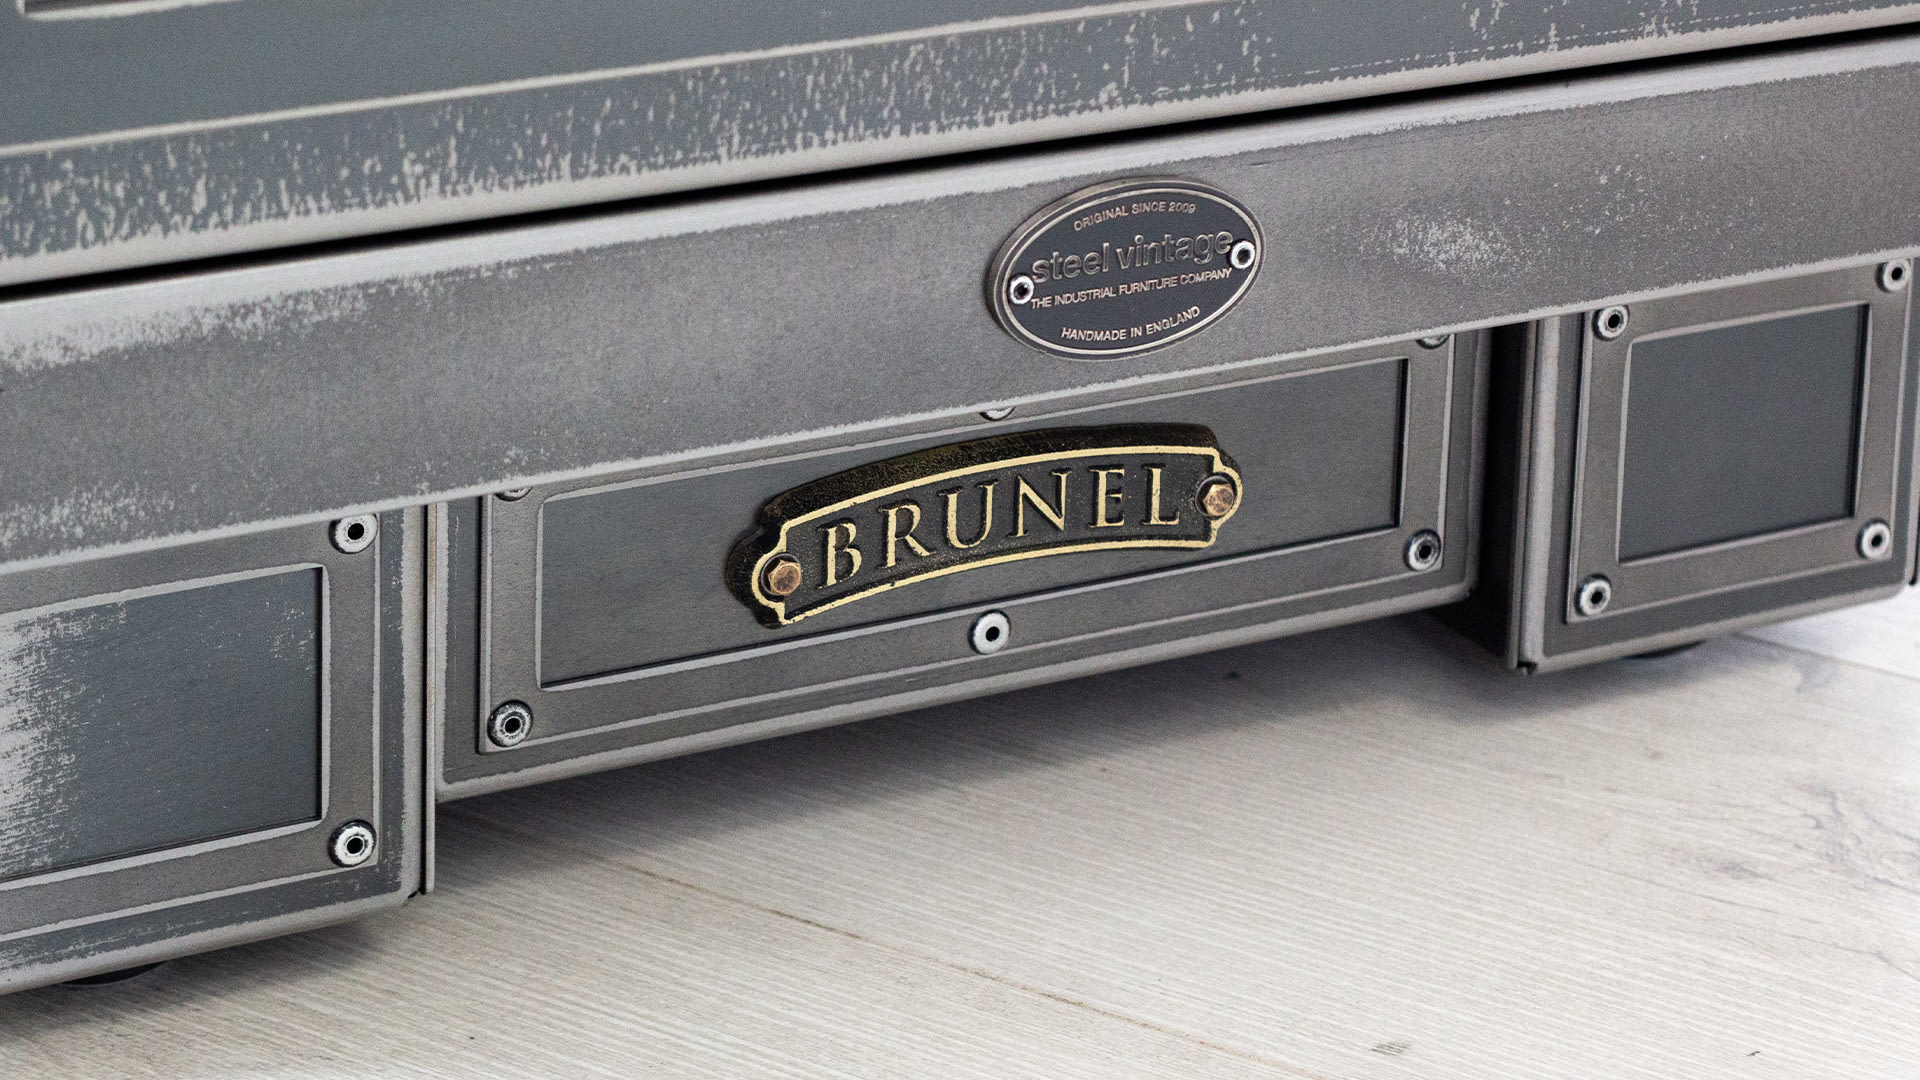 Our Brunel range of office accessories is growing rapidly. From organising to supporting and tidying to hiding we have it covered. Built to last a lifetime.